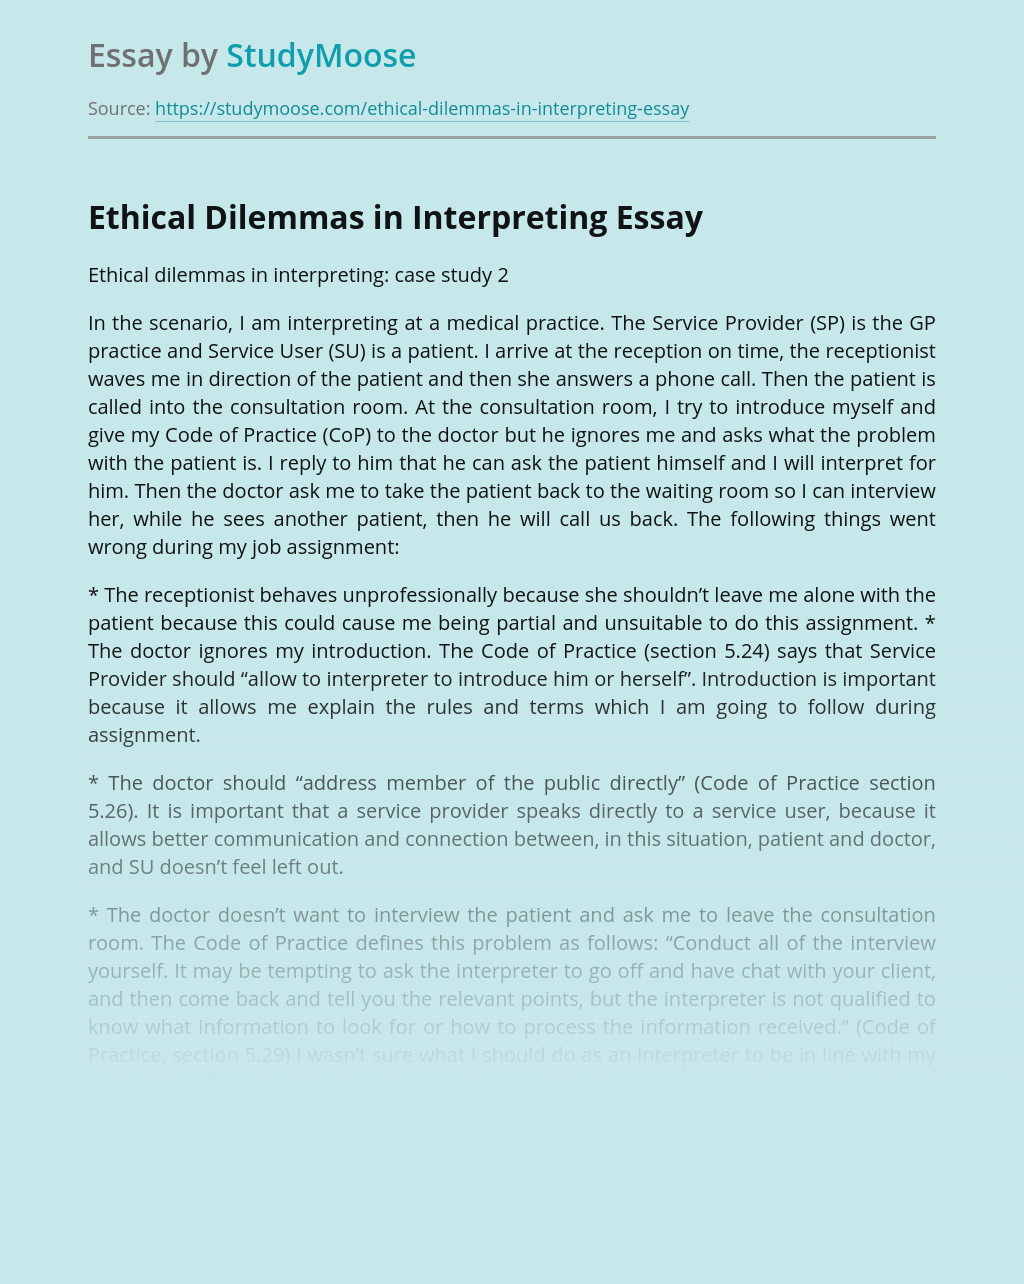 Ethical Dilemmas in Interpreting